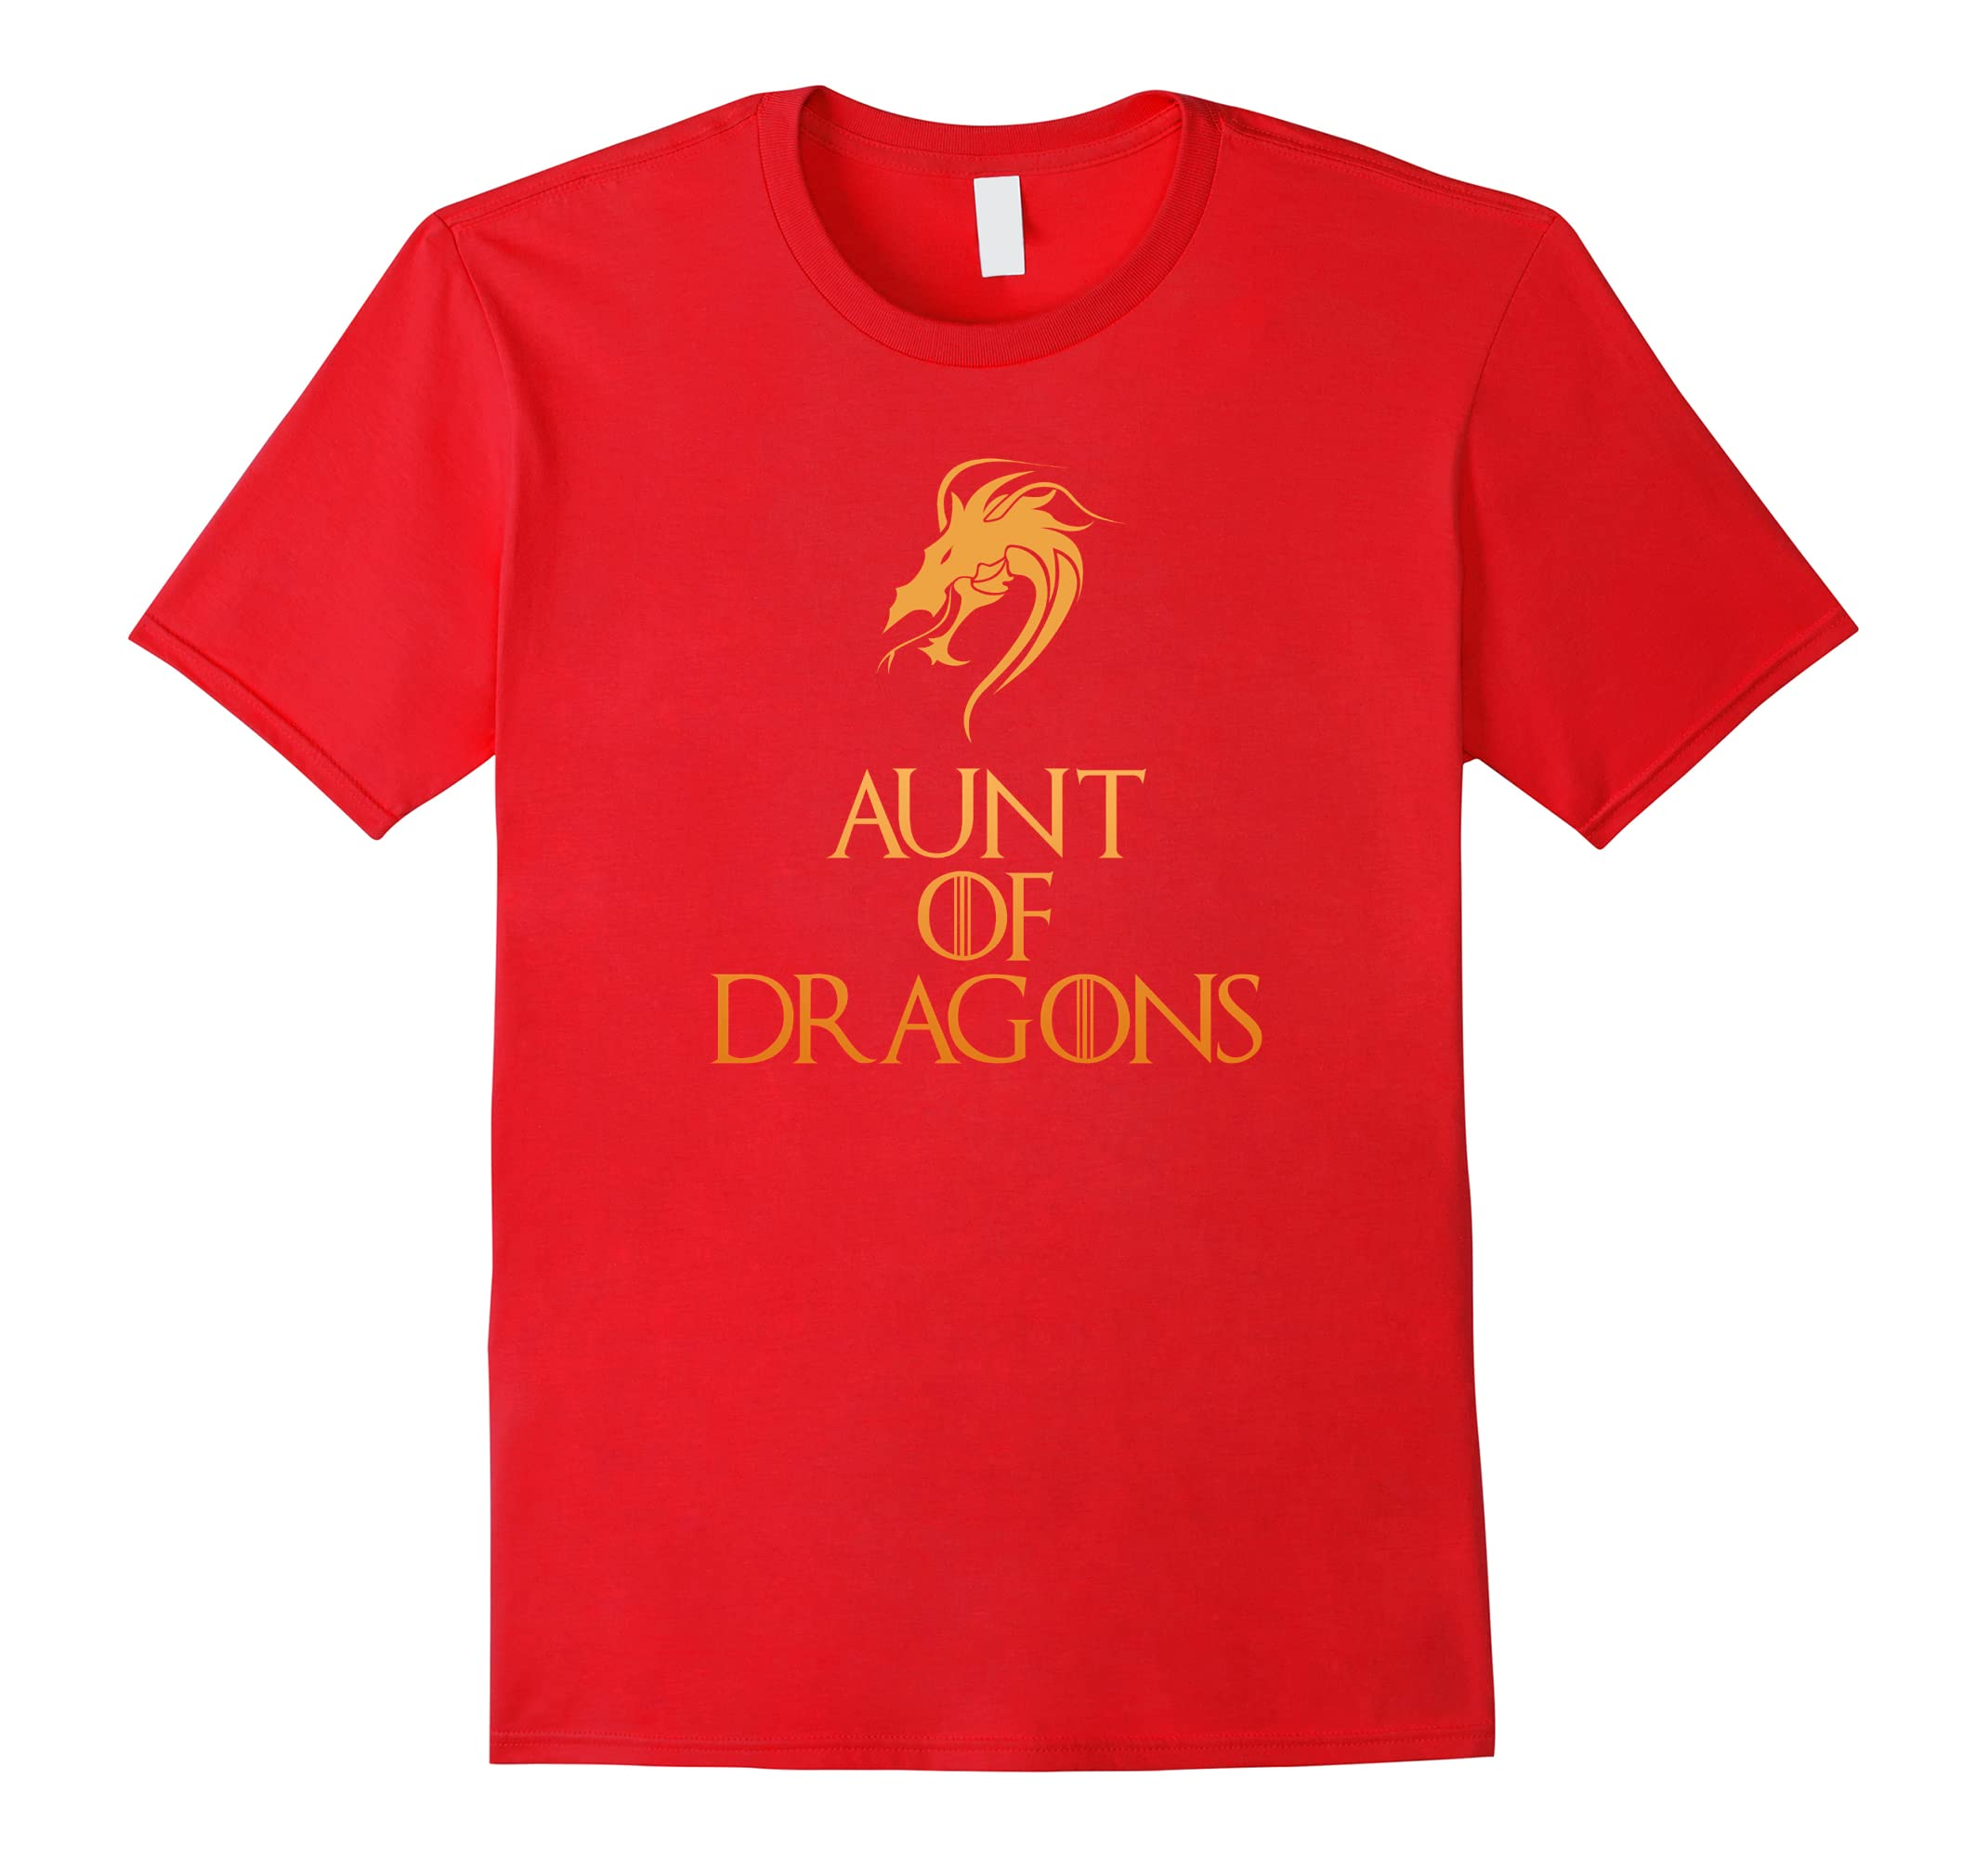 Aunt Of Dragons T-Shirt Funny Cool Family Fun Gift Top Tee-ah my shirt one gift